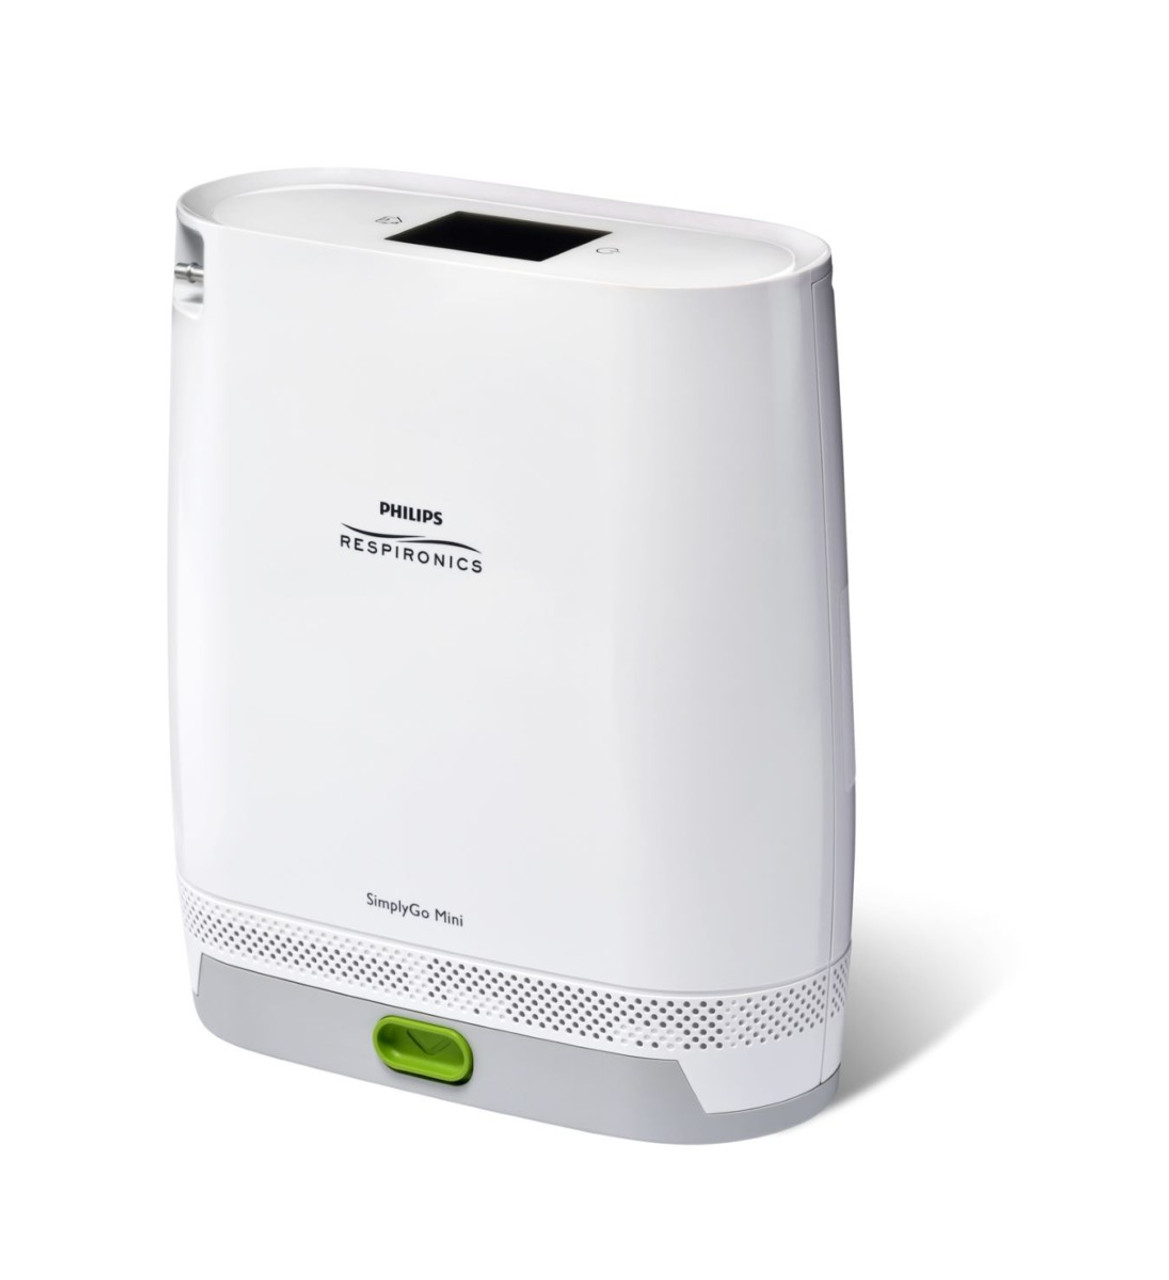 Philips Respironics SimplyGo Mini Standard Lithium Ion Battery